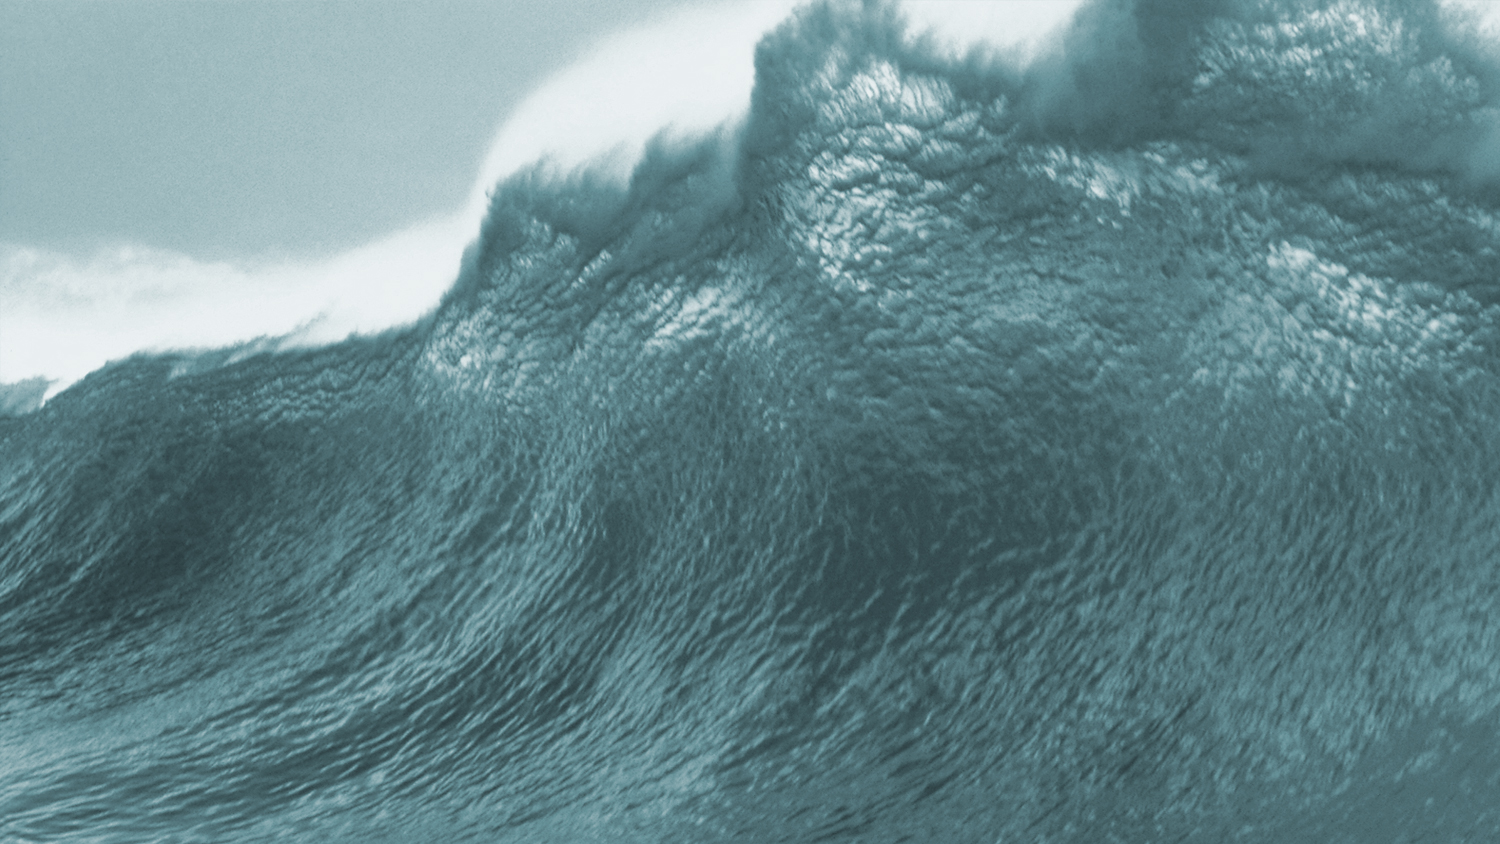 An image of a large wave